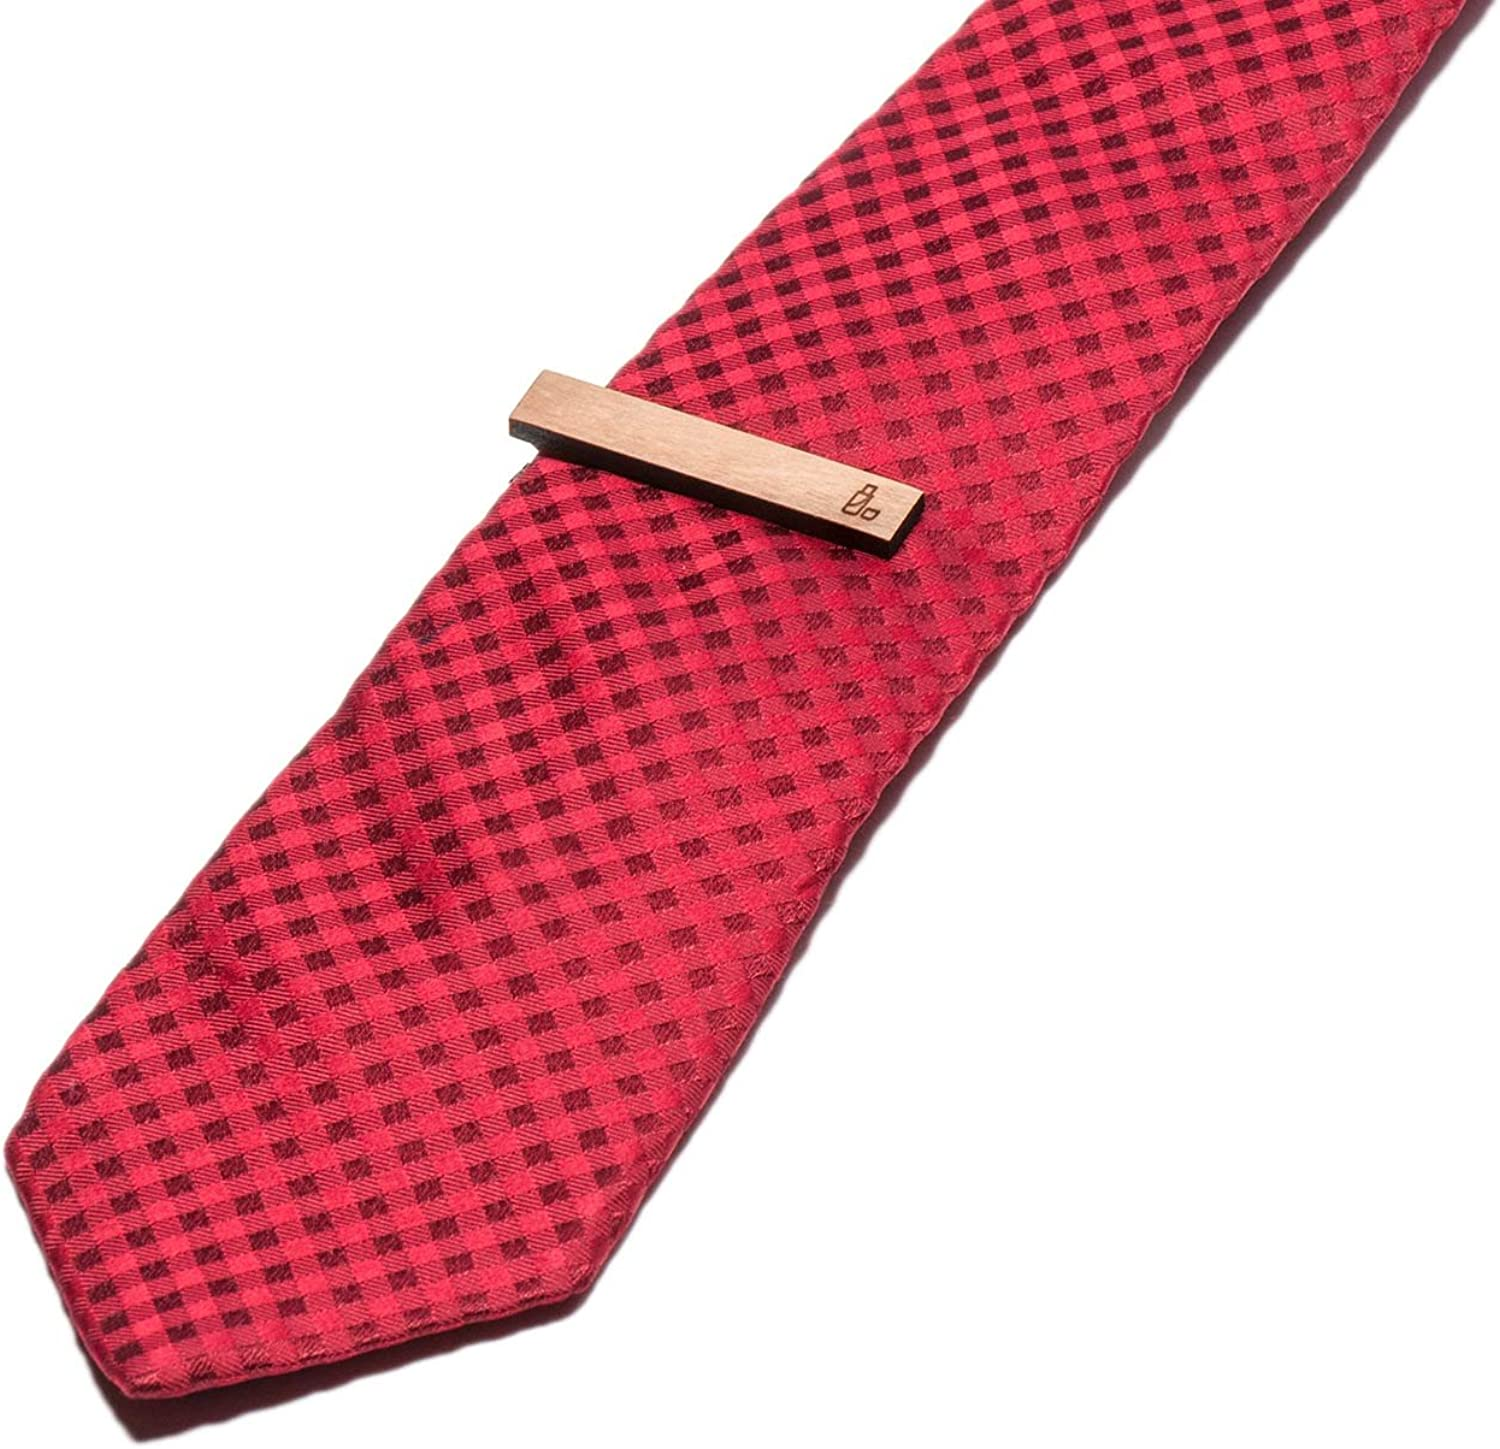 Wooden Accessories Company Wooden Tie Clips with Laser Engraved Memory Stick Design Cherry Wood Tie Bar Engraved in The USA